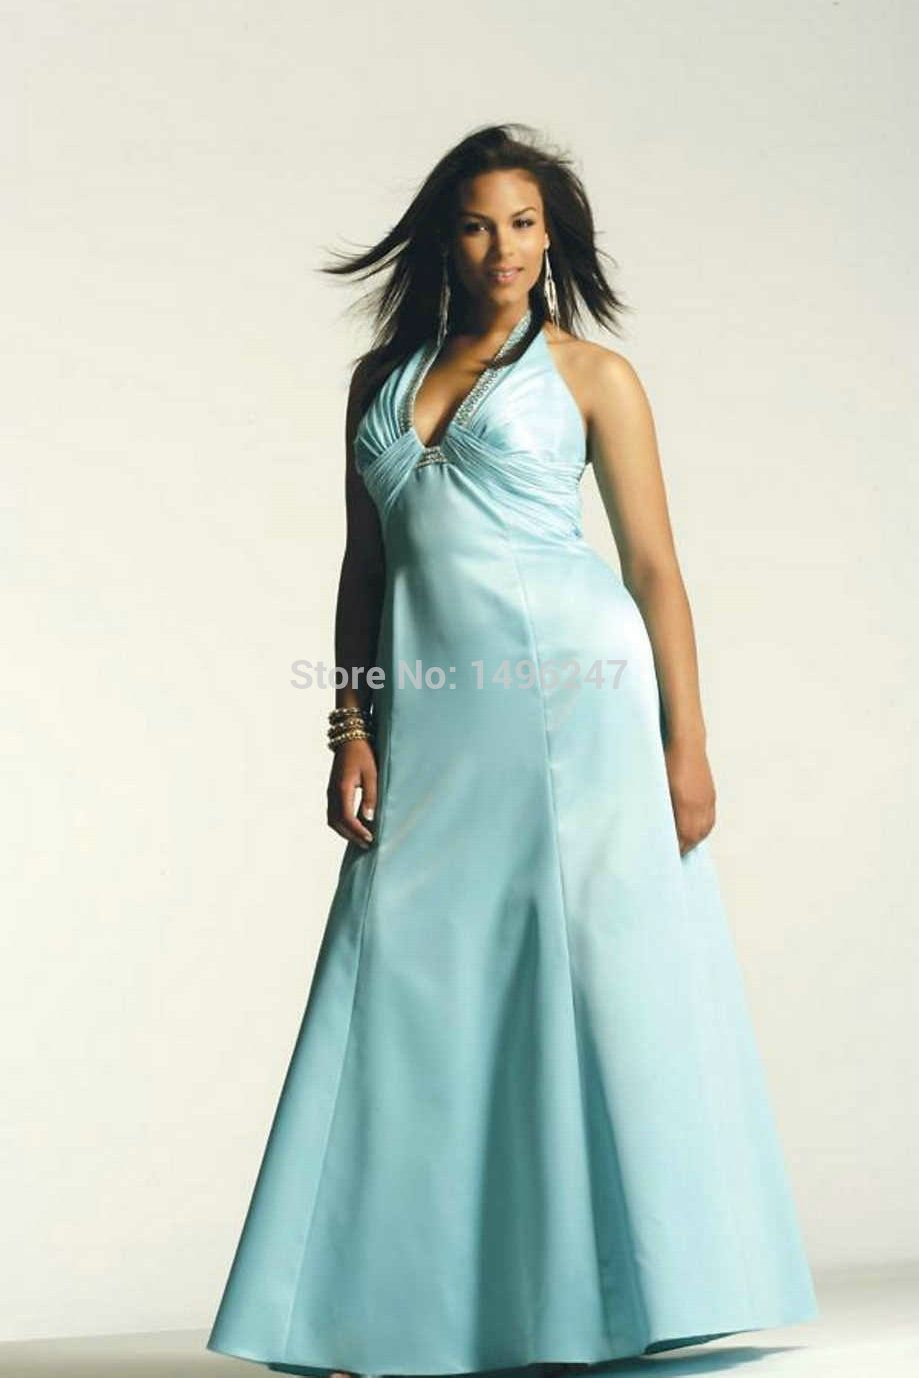 Simple Elegant Taffeta A Line Long Party Dresses 2014 Hot Selling ...